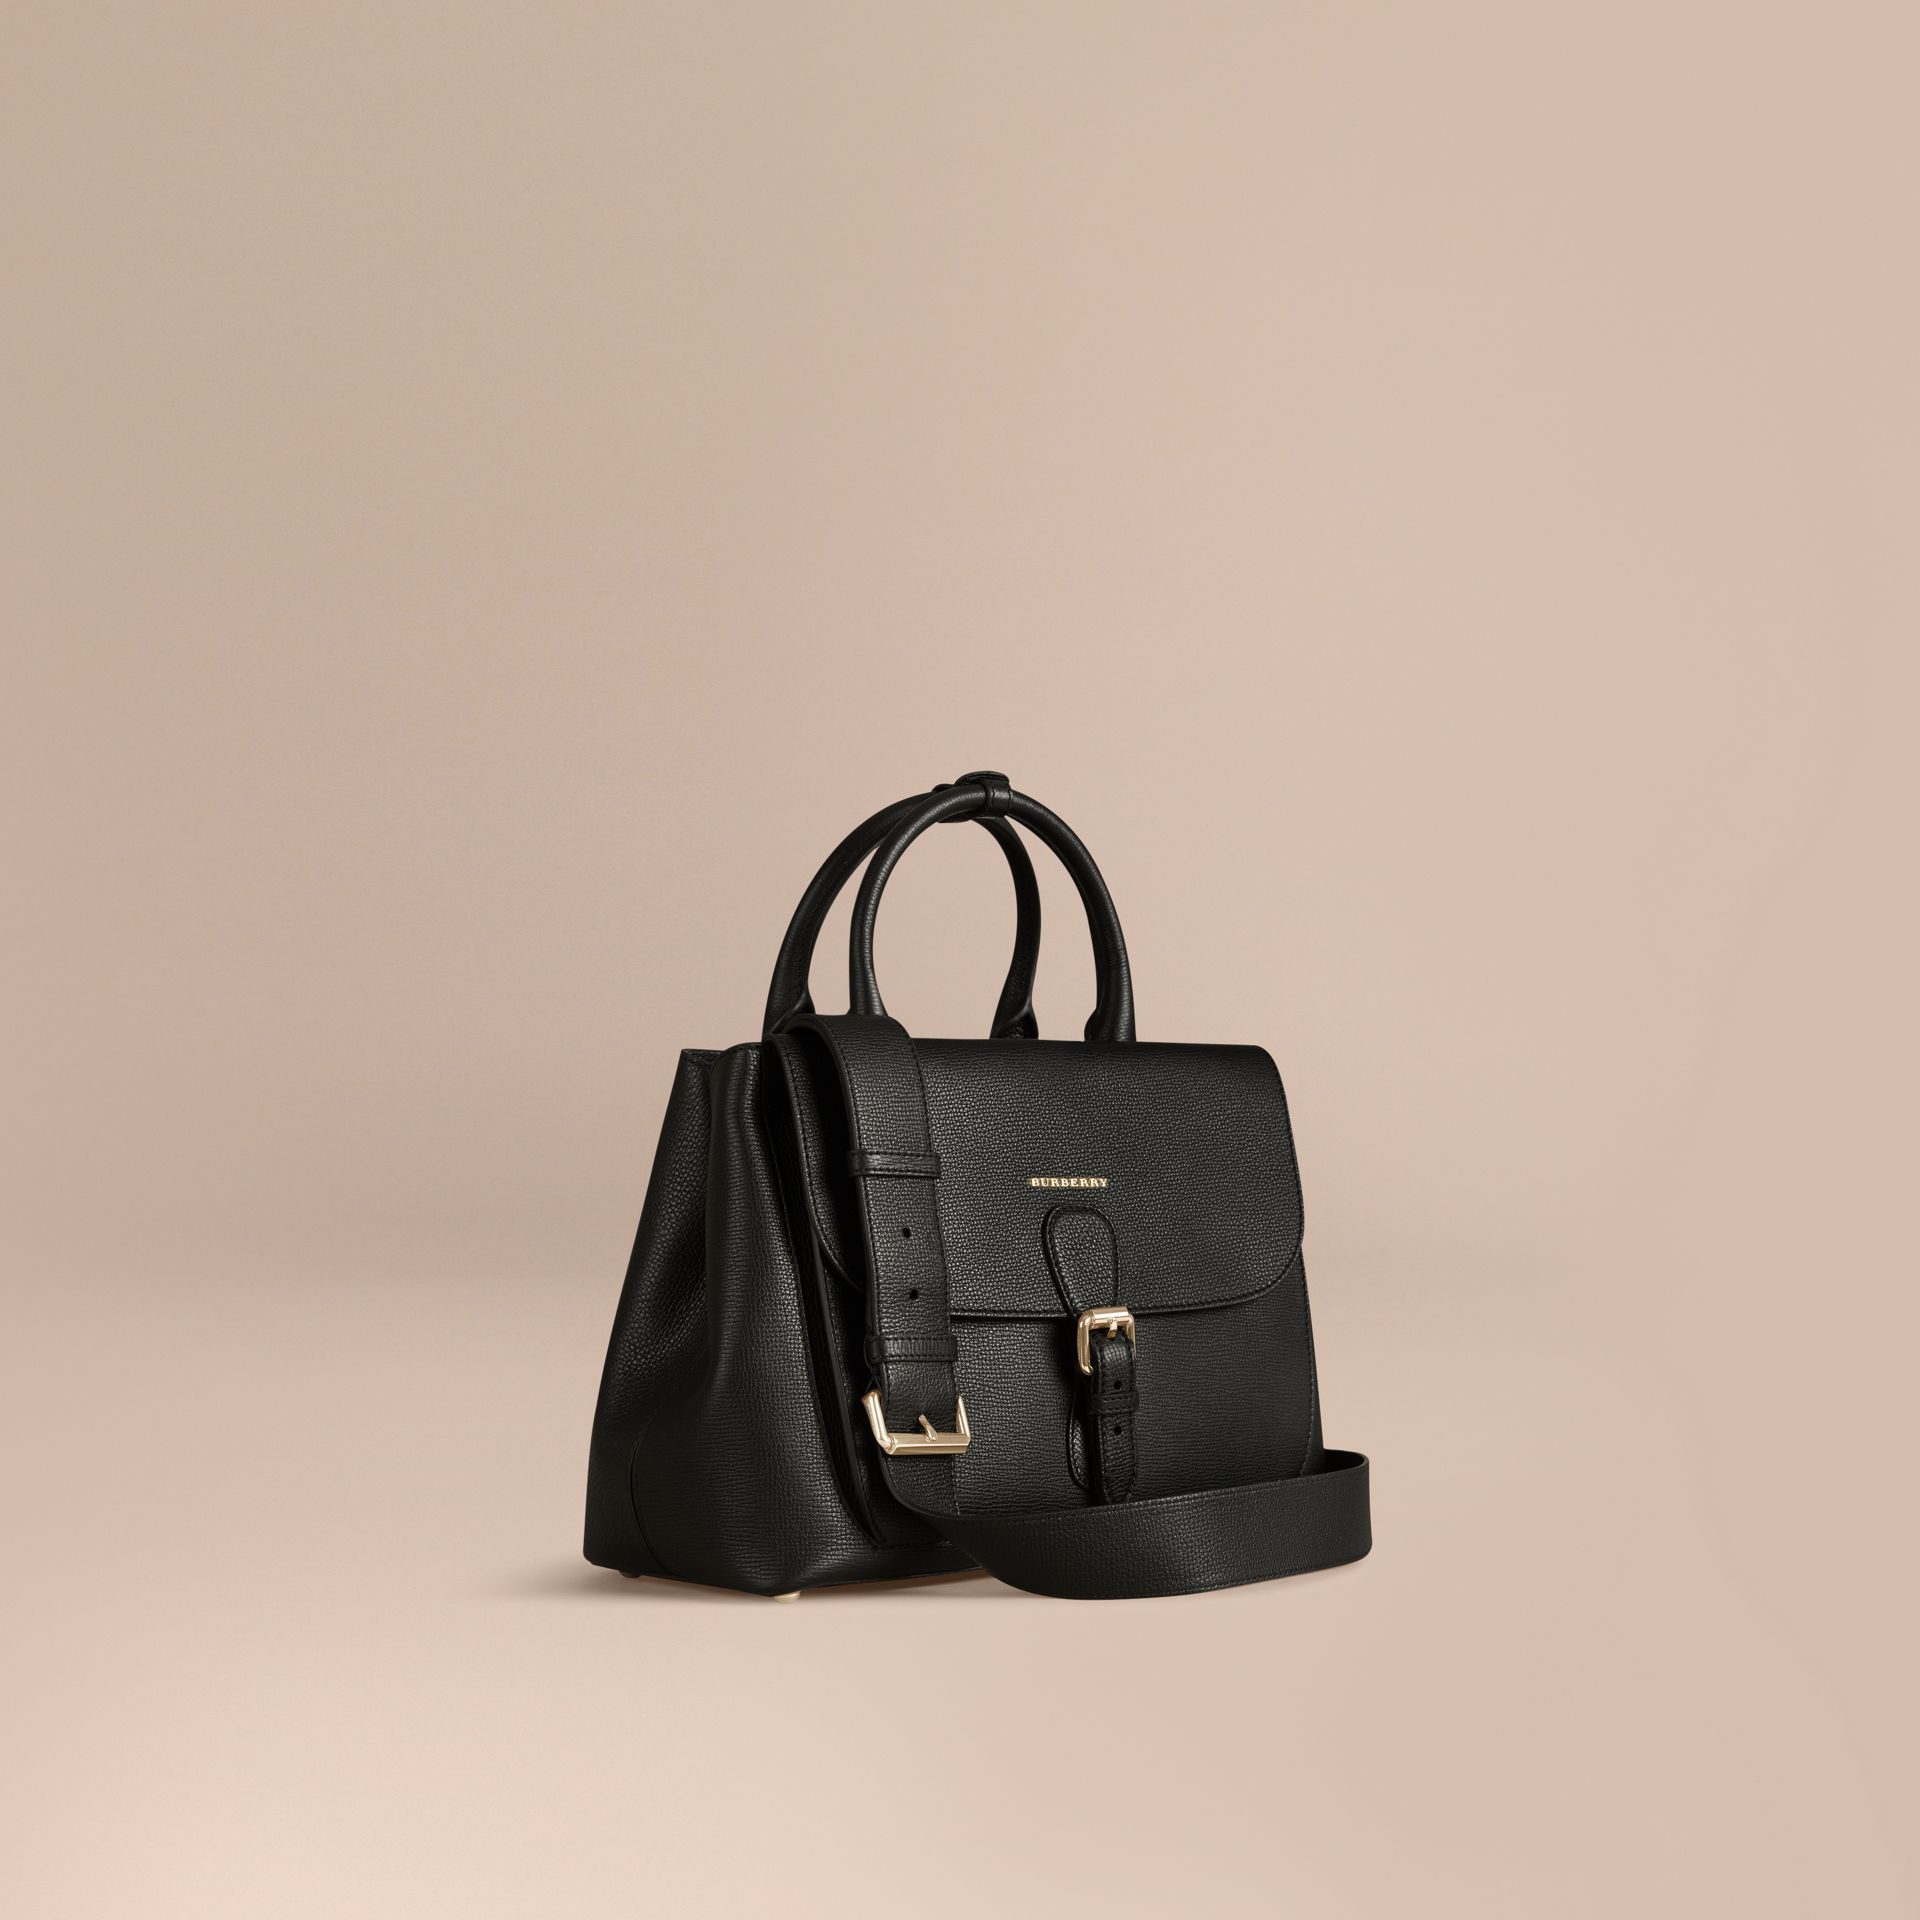 Black The Medium Saddle Bag in Grainy Bonded Leather Black - gallery image 1